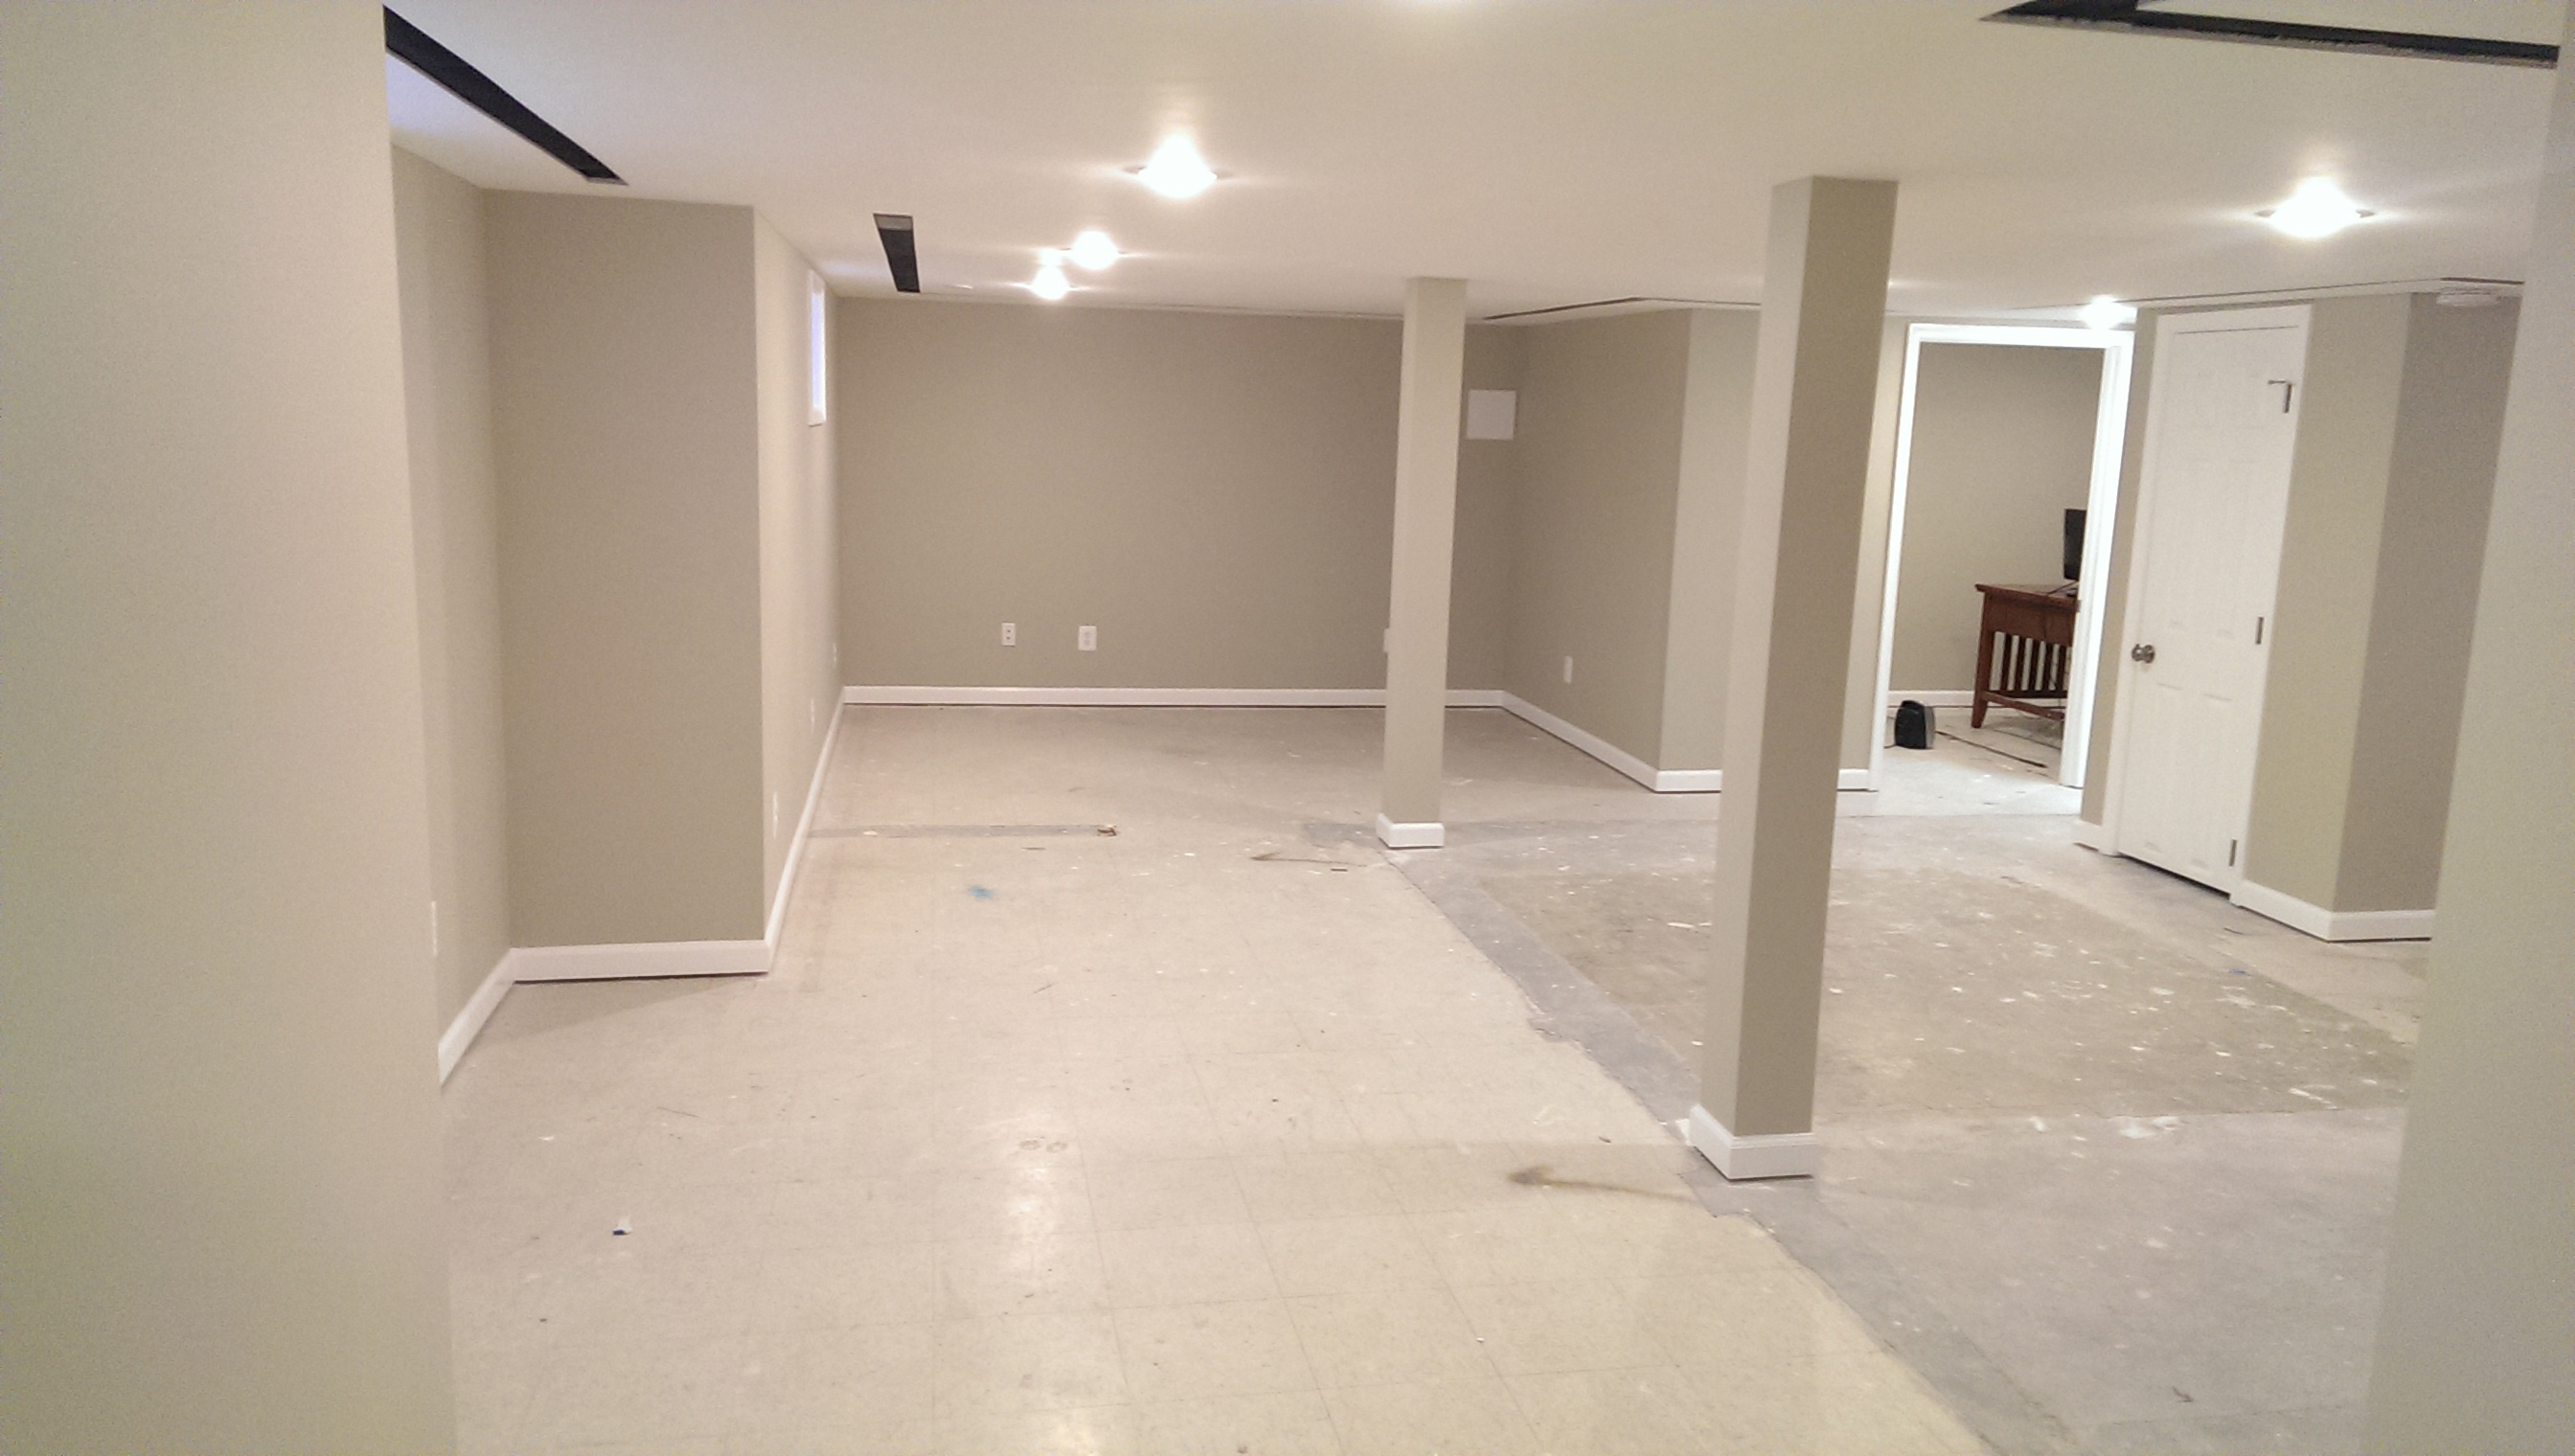 Basement Remodel Chevy Chase, MD